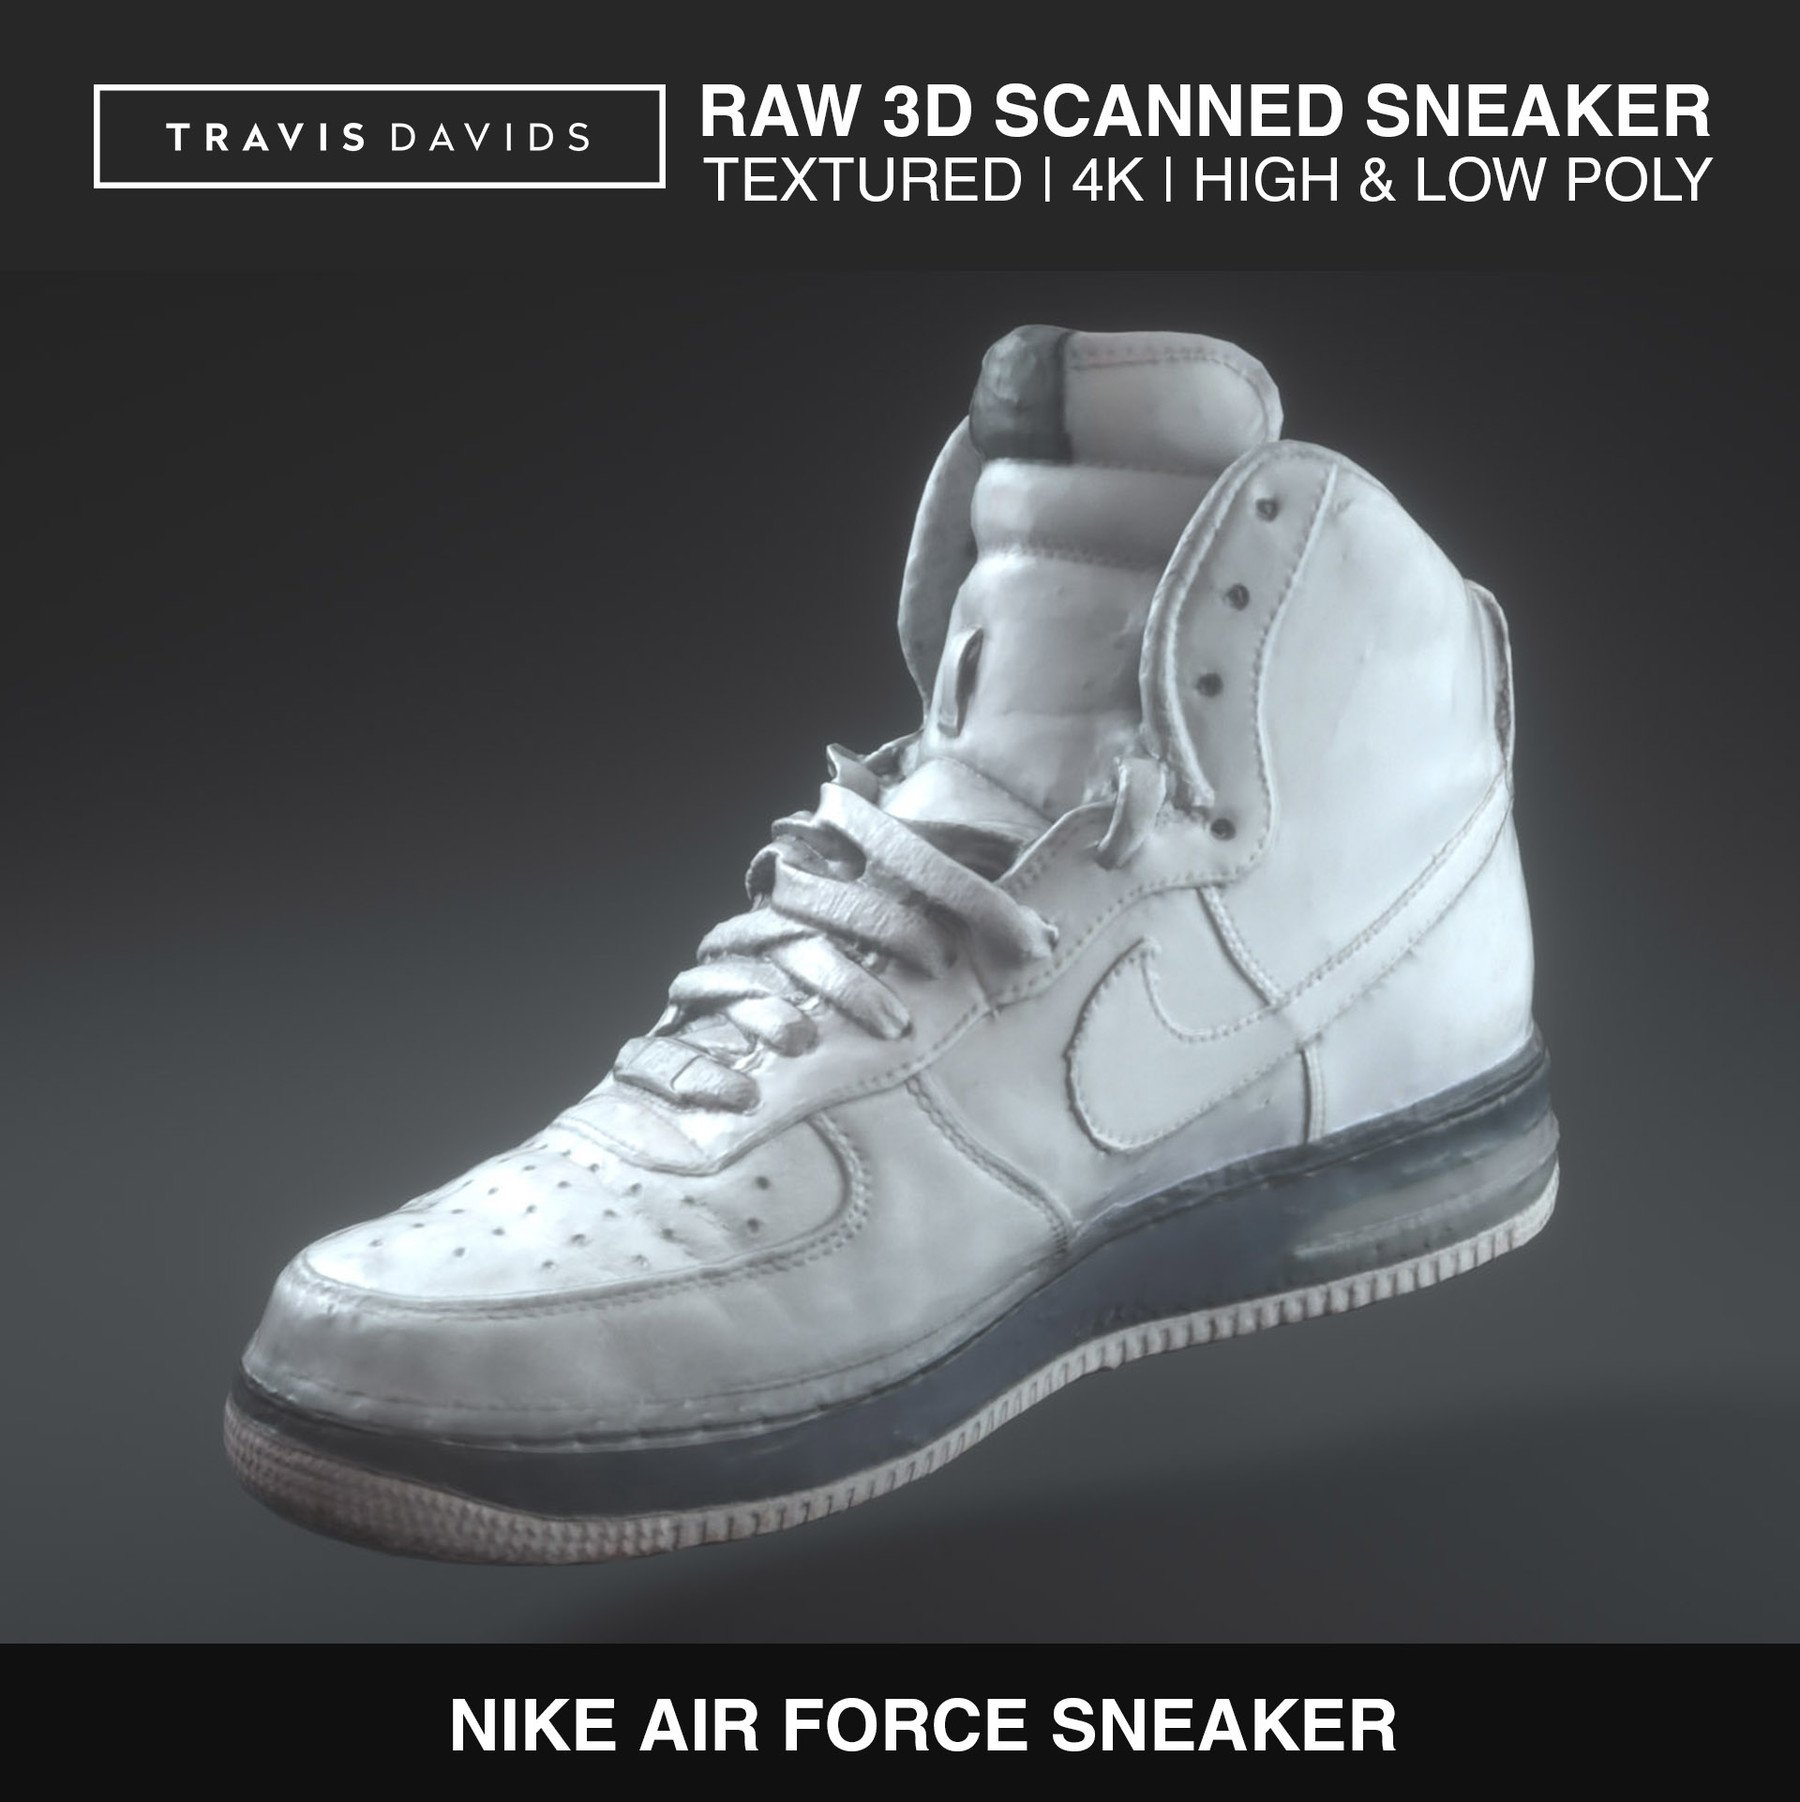 Nike air force sneaker solo